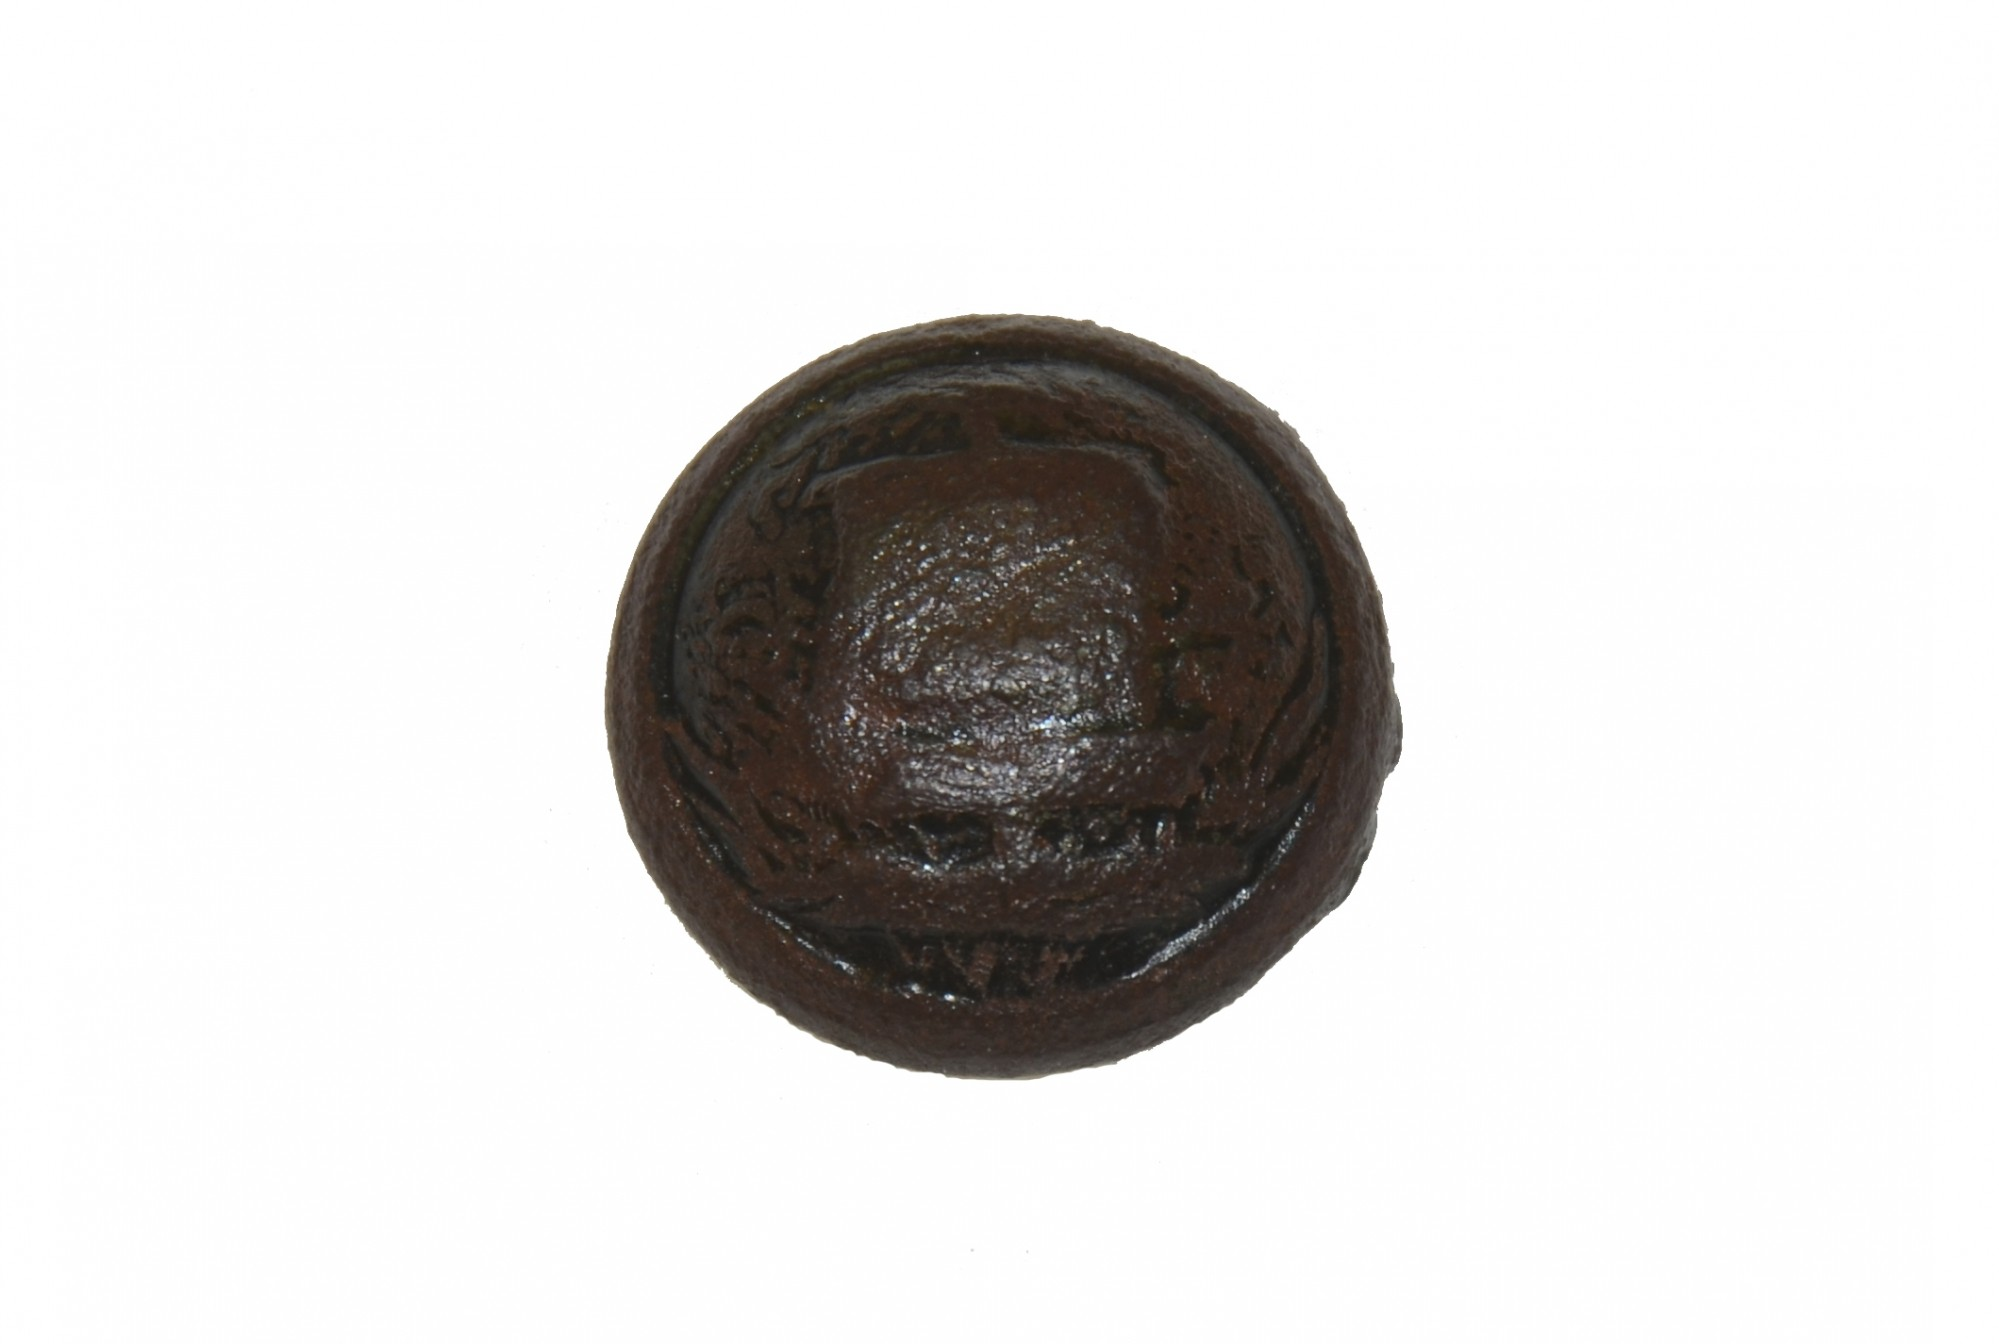 VERY RARE EXCAVATED CIVIL WAR ALABAMA STATE SEAL BUTTON